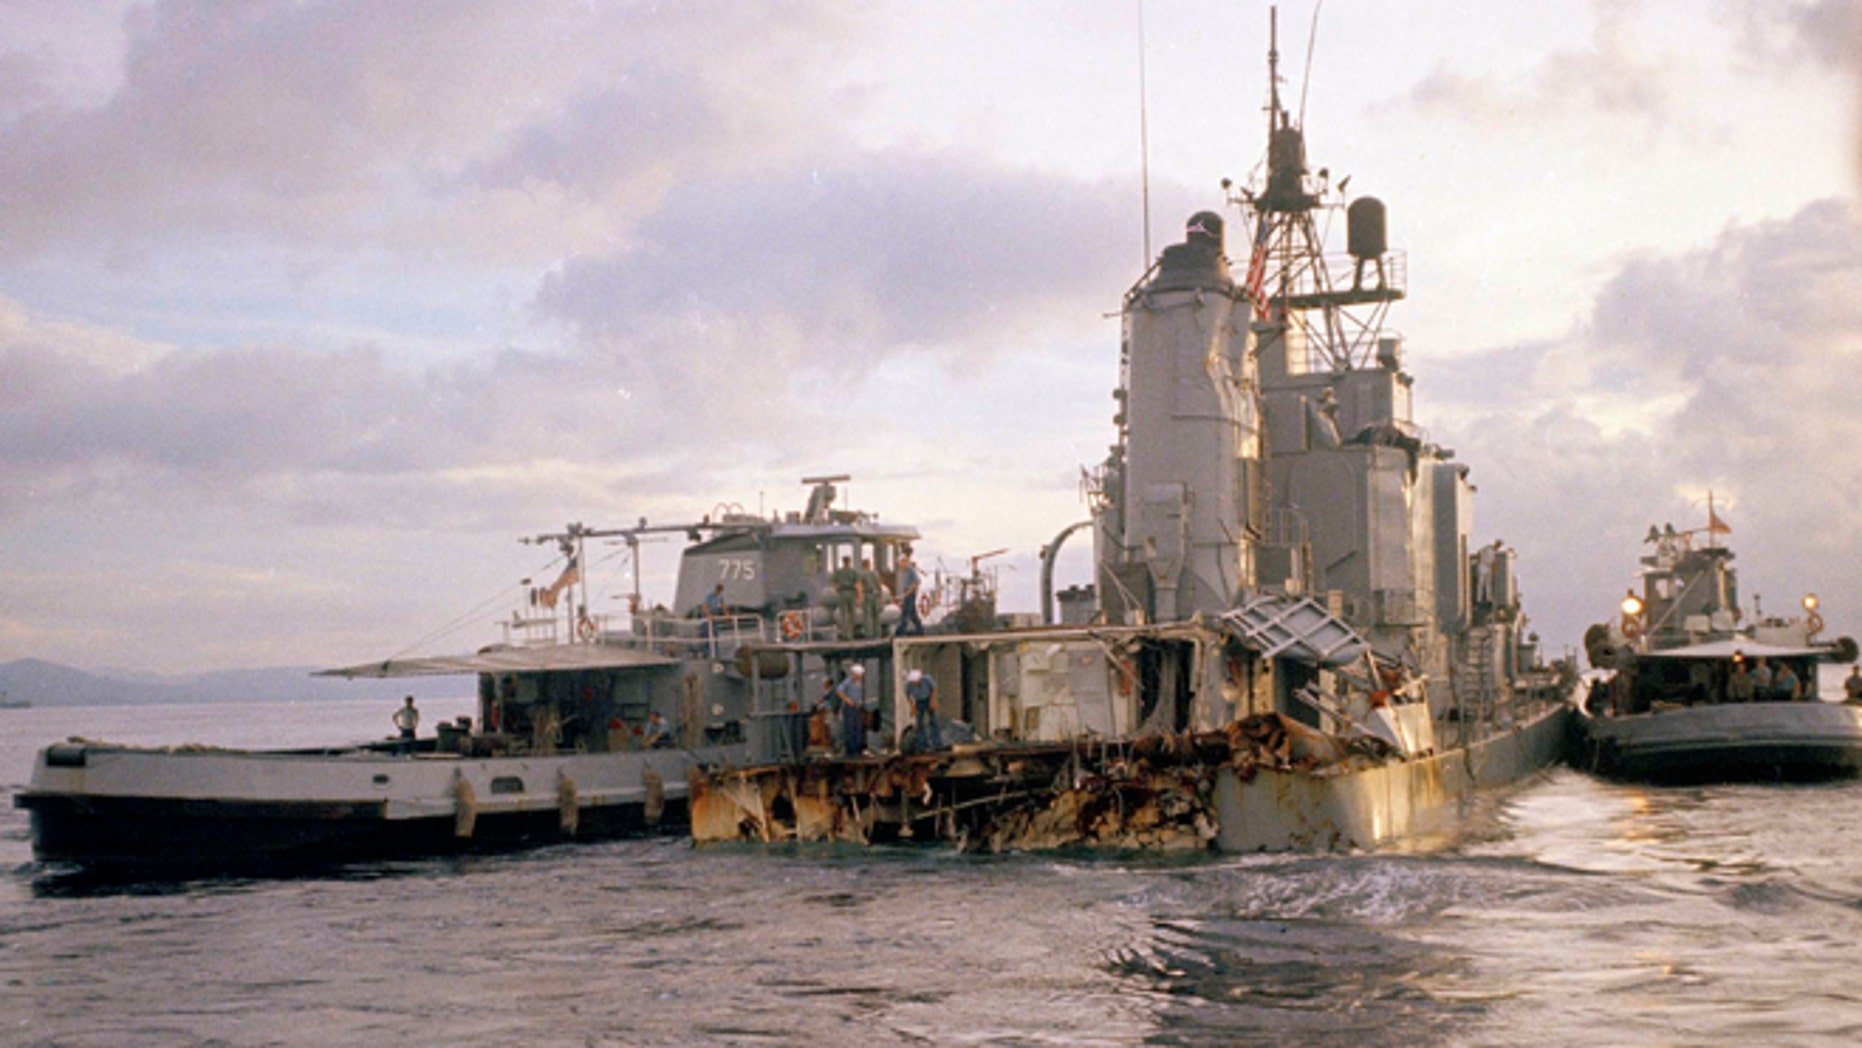 Sailors inspect damage to the USS Frank E. Evans on June 3, 1969.